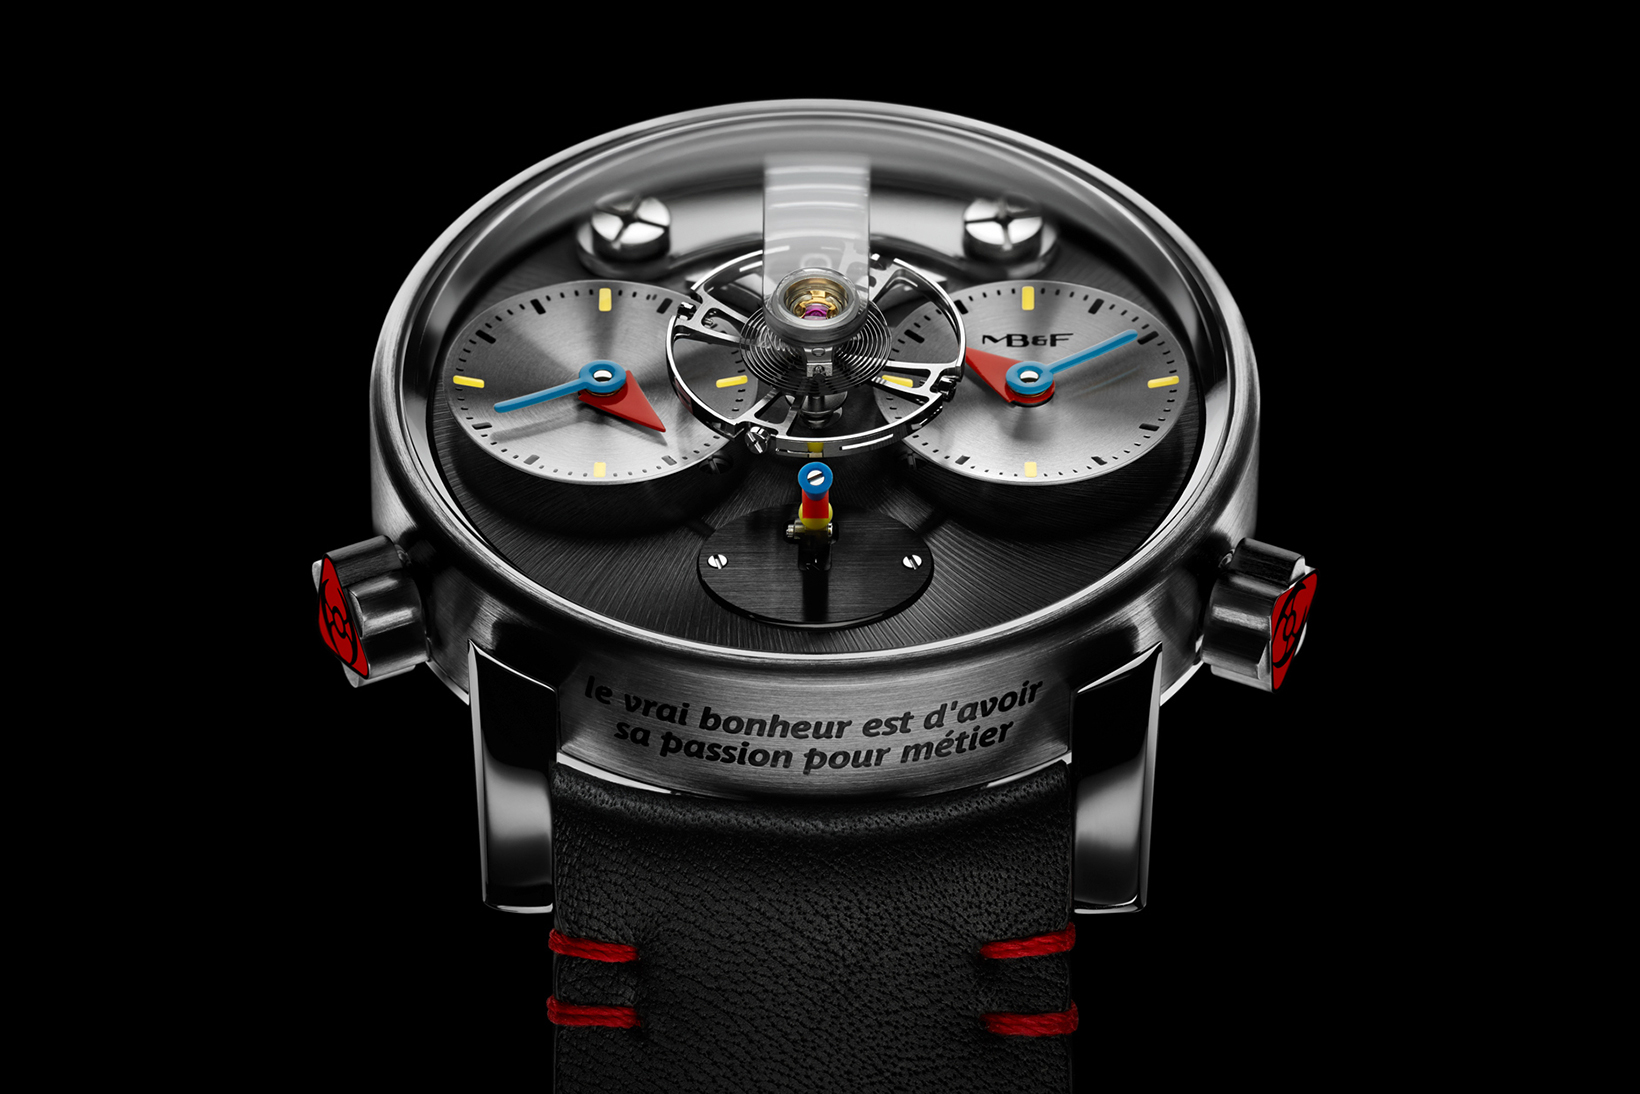 LM1 Silberstein Combines Chic Elegance With a Hint of Pop Art Styling